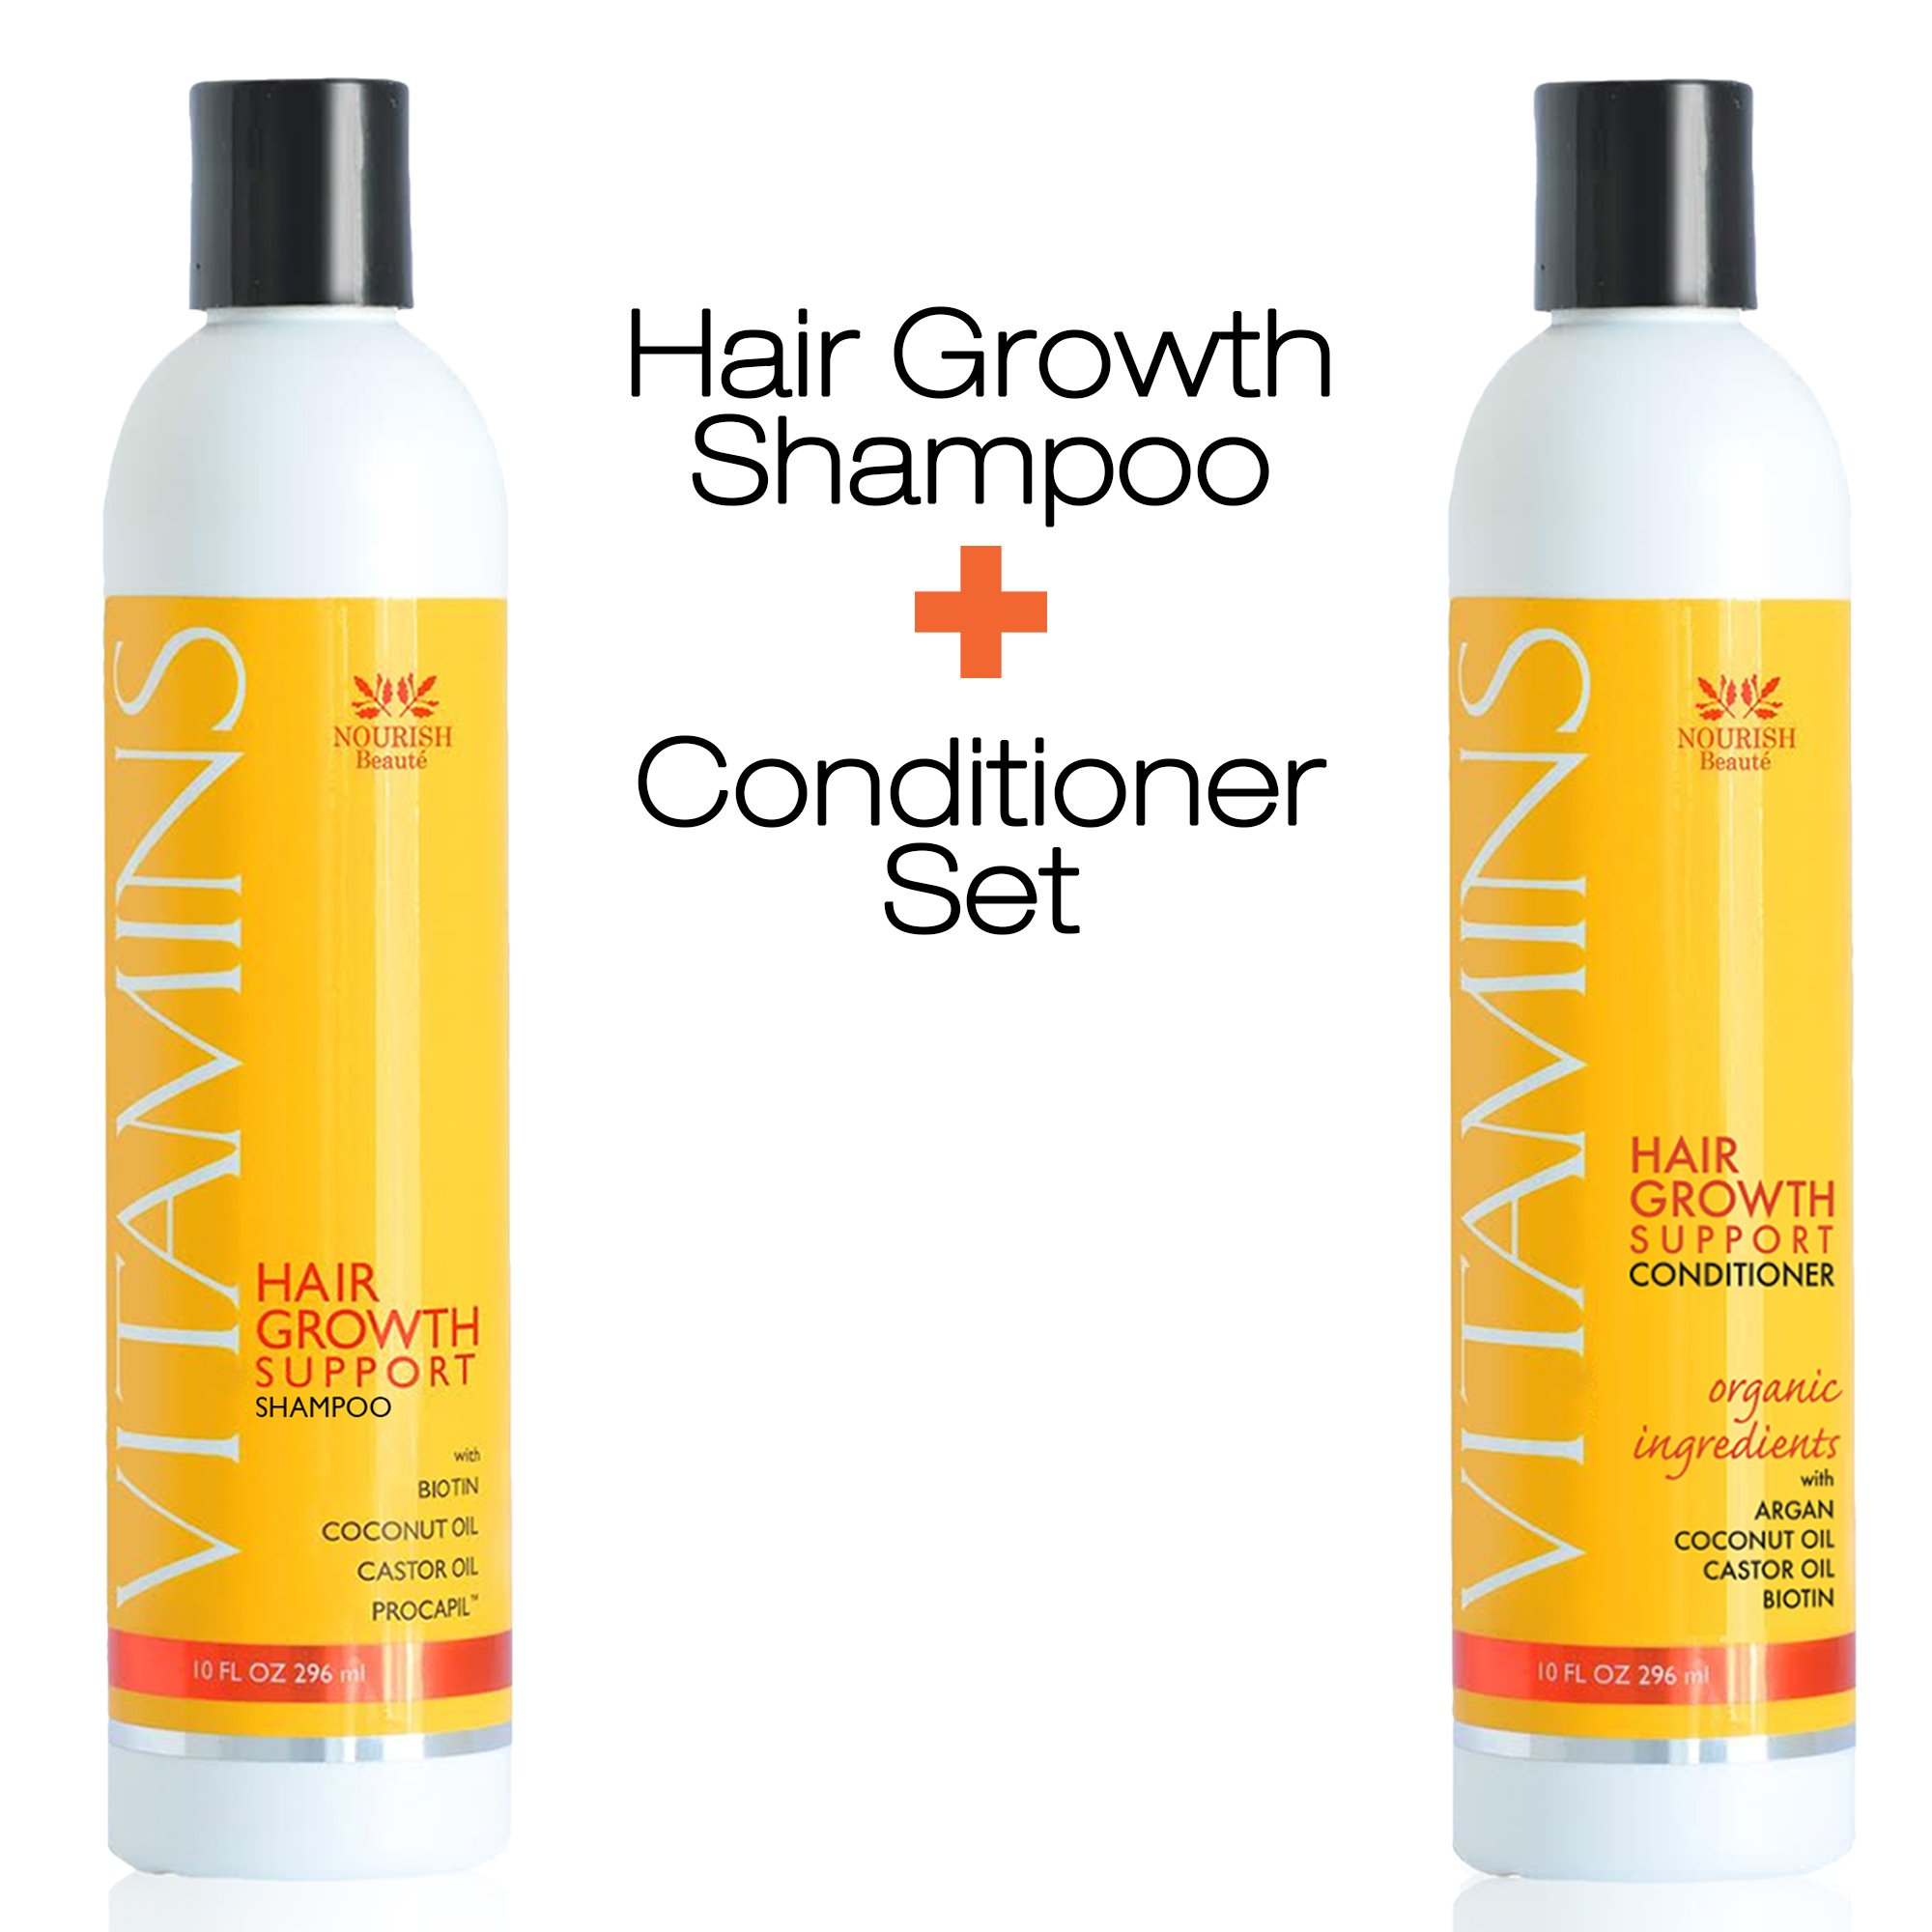 VITAMINS Hair Loss Shampoo and Conditioner w/Natural Growth Factors, Argan Oil & Biotin - Clinically Tested Treatment for Men and Women, Guaranteed Results